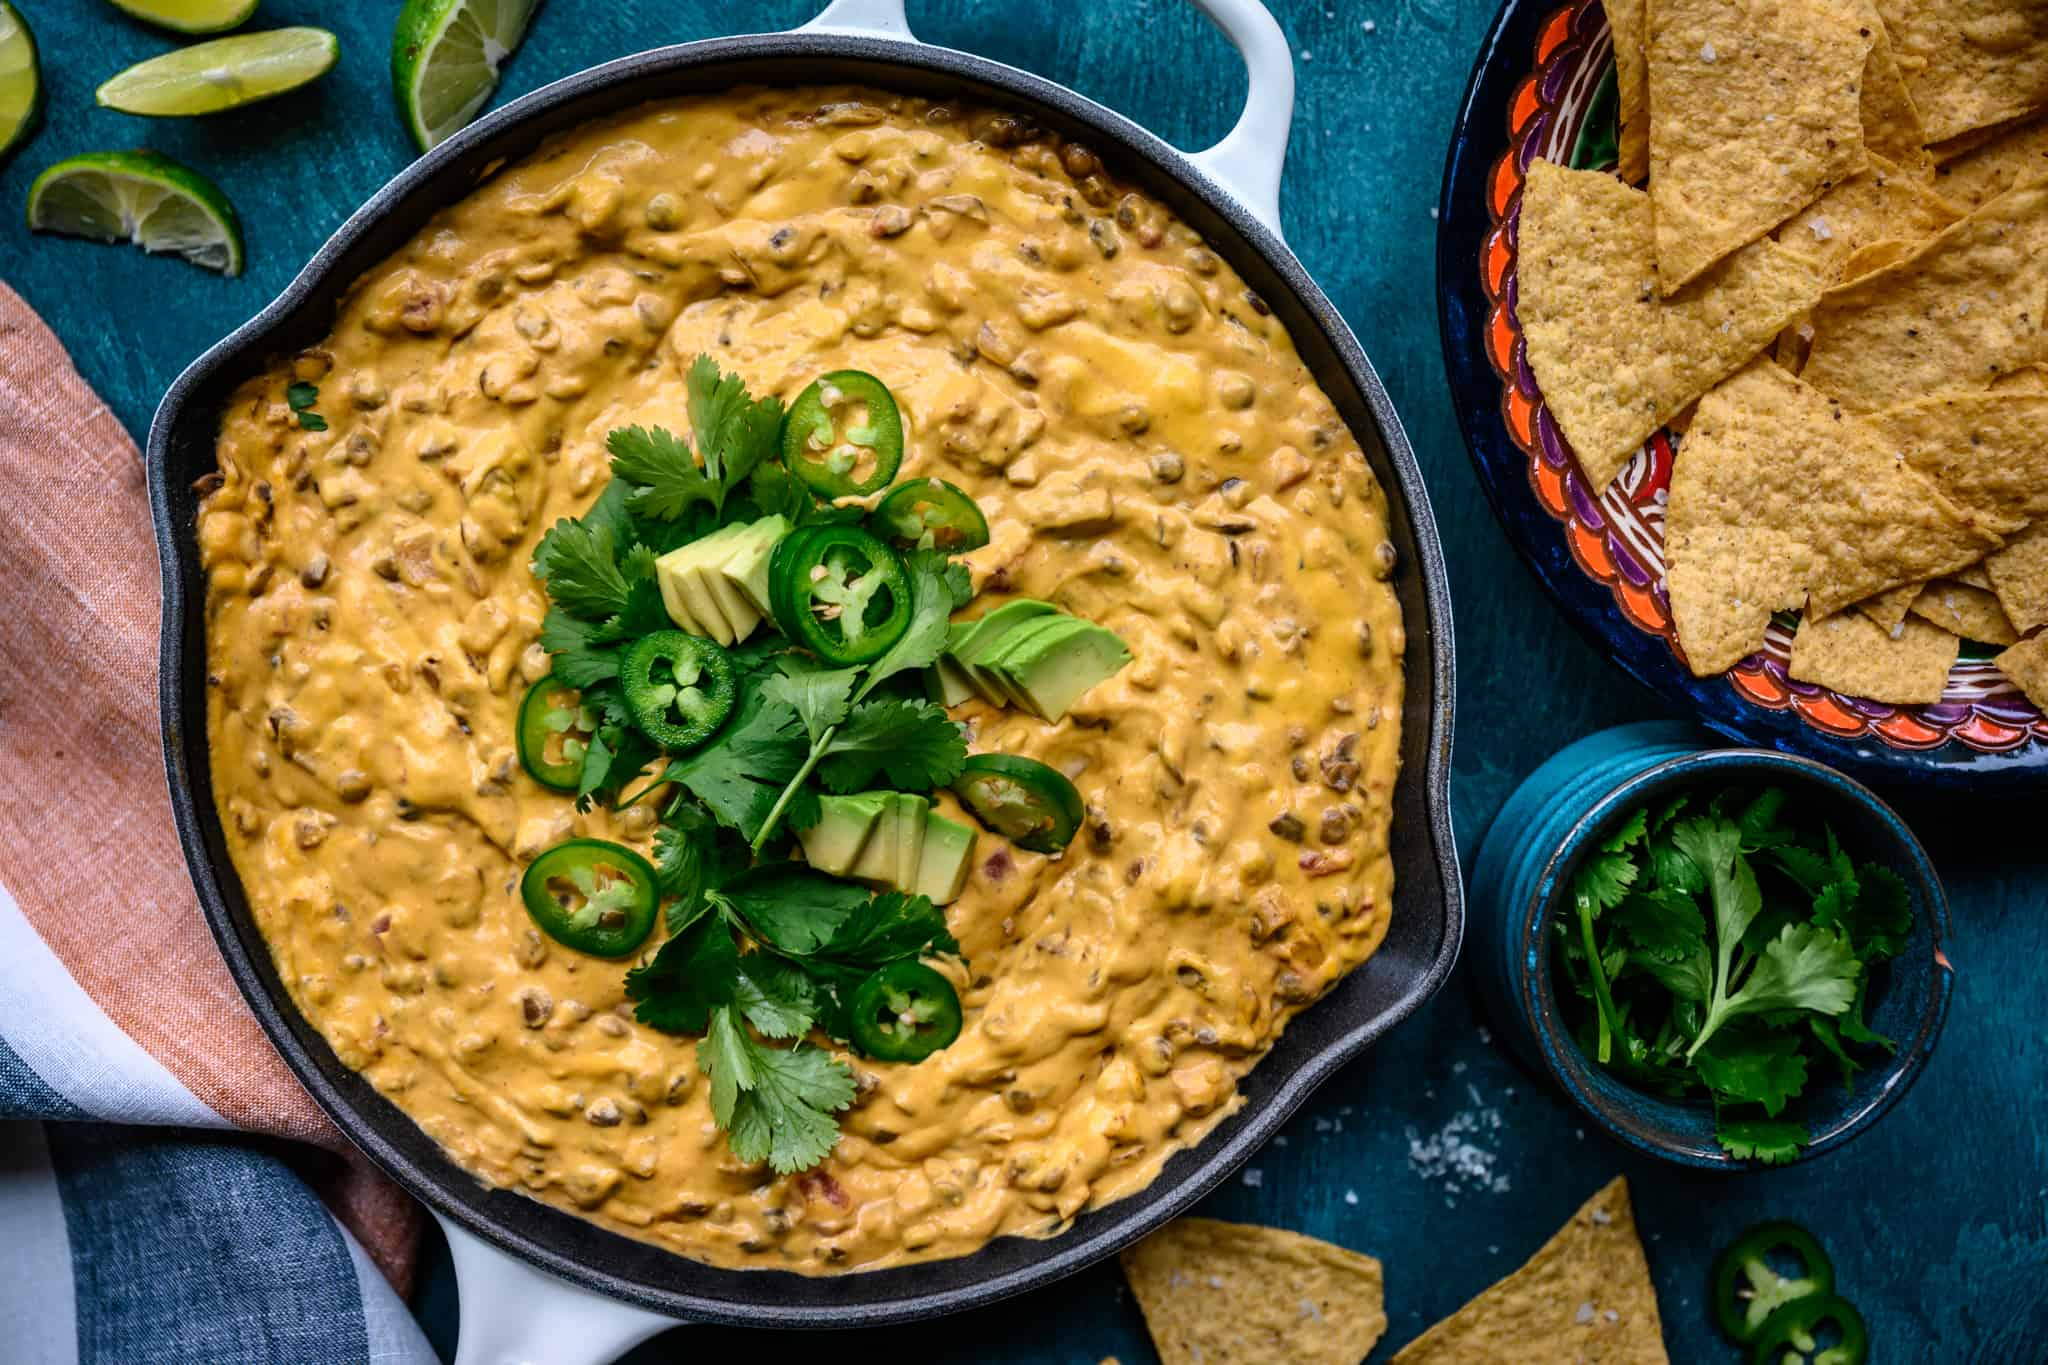 overhead view of vegan chile con queso dip in skillet with tortilla chips